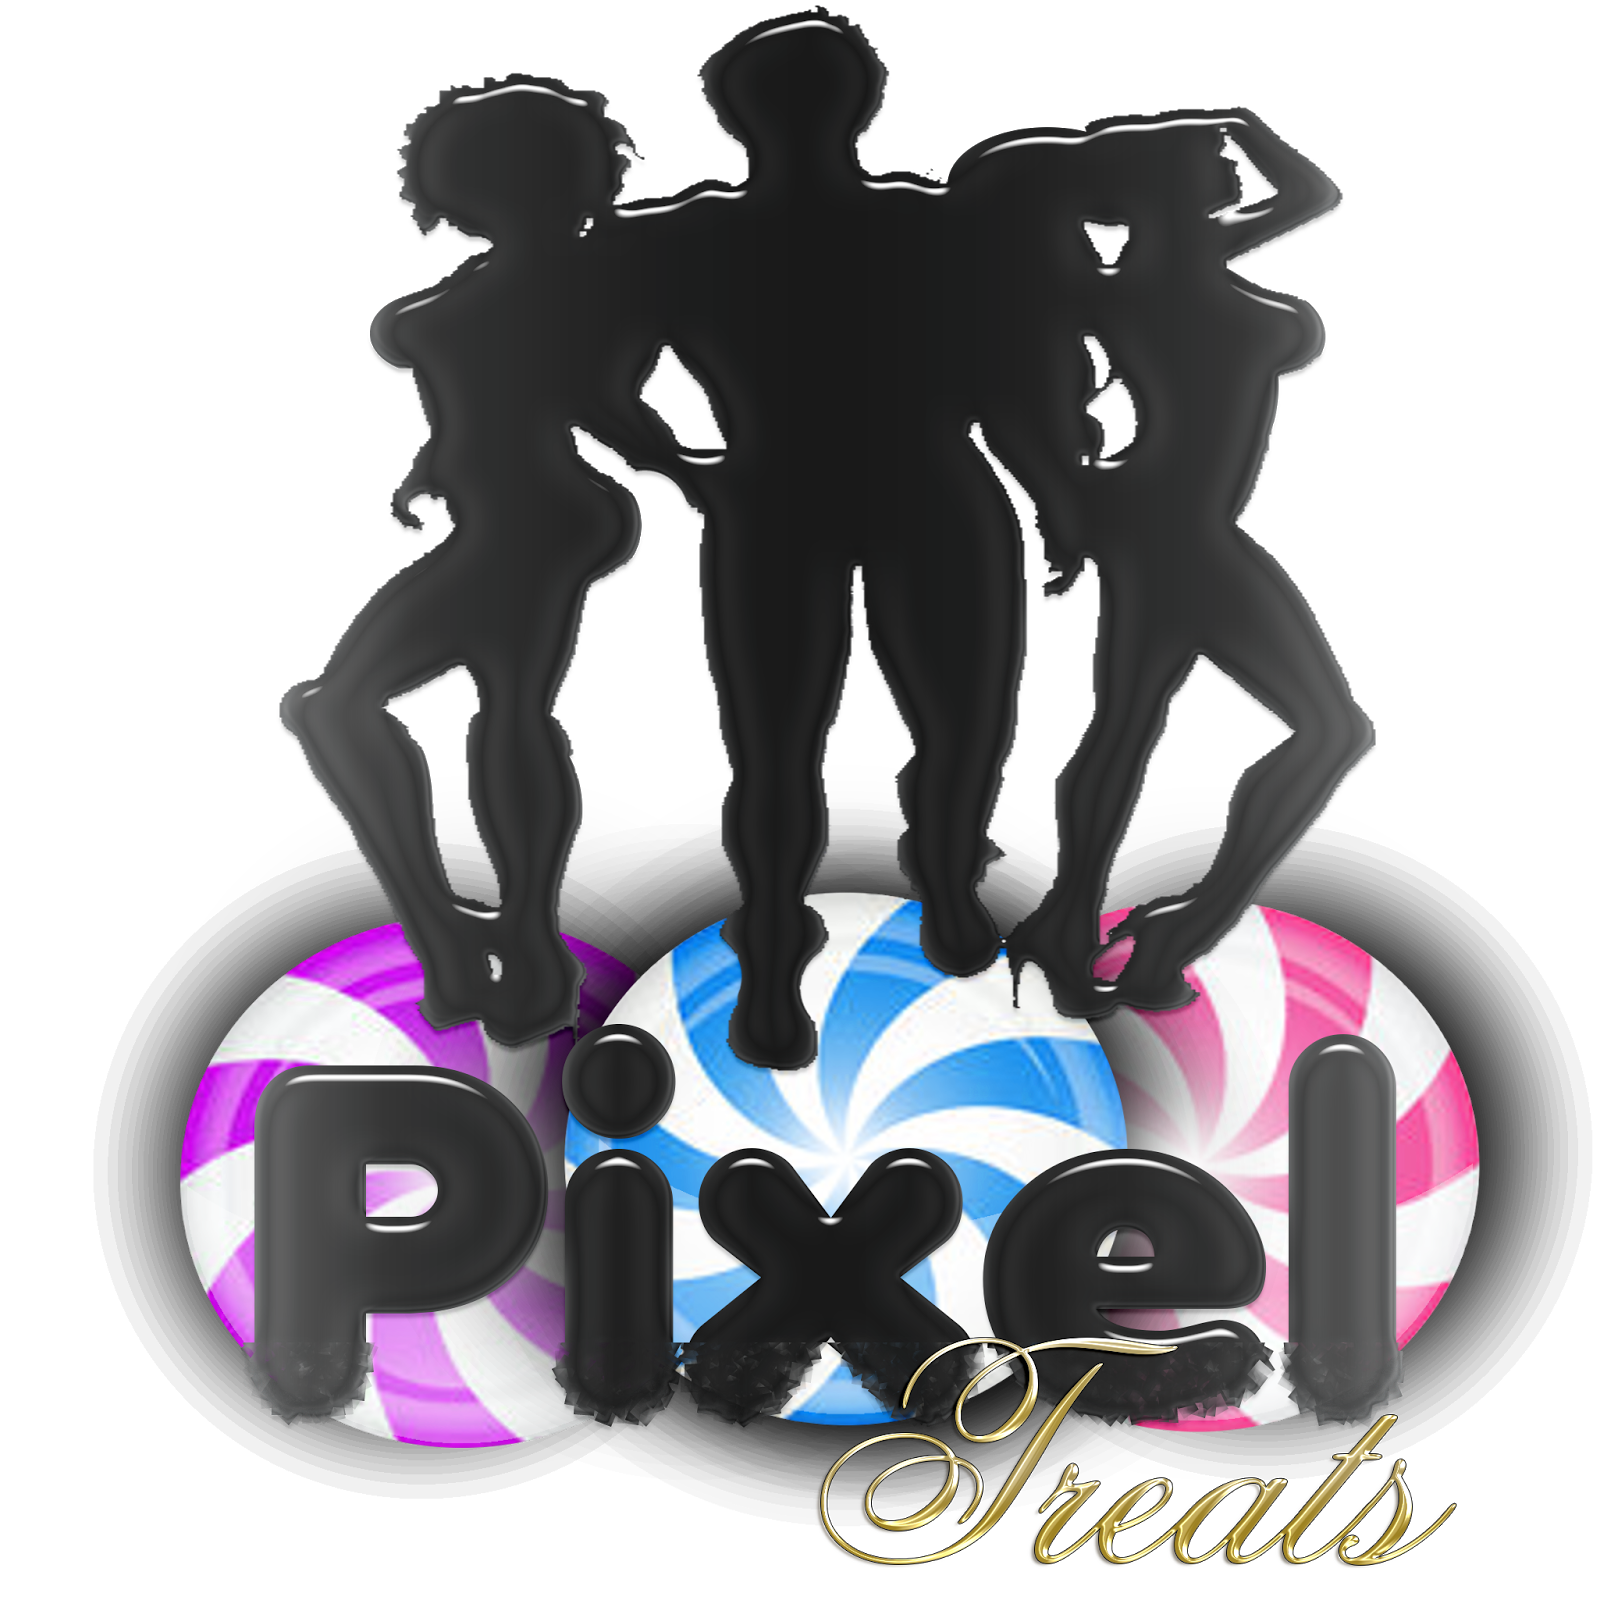 Look for this Logo! Pixel Treats